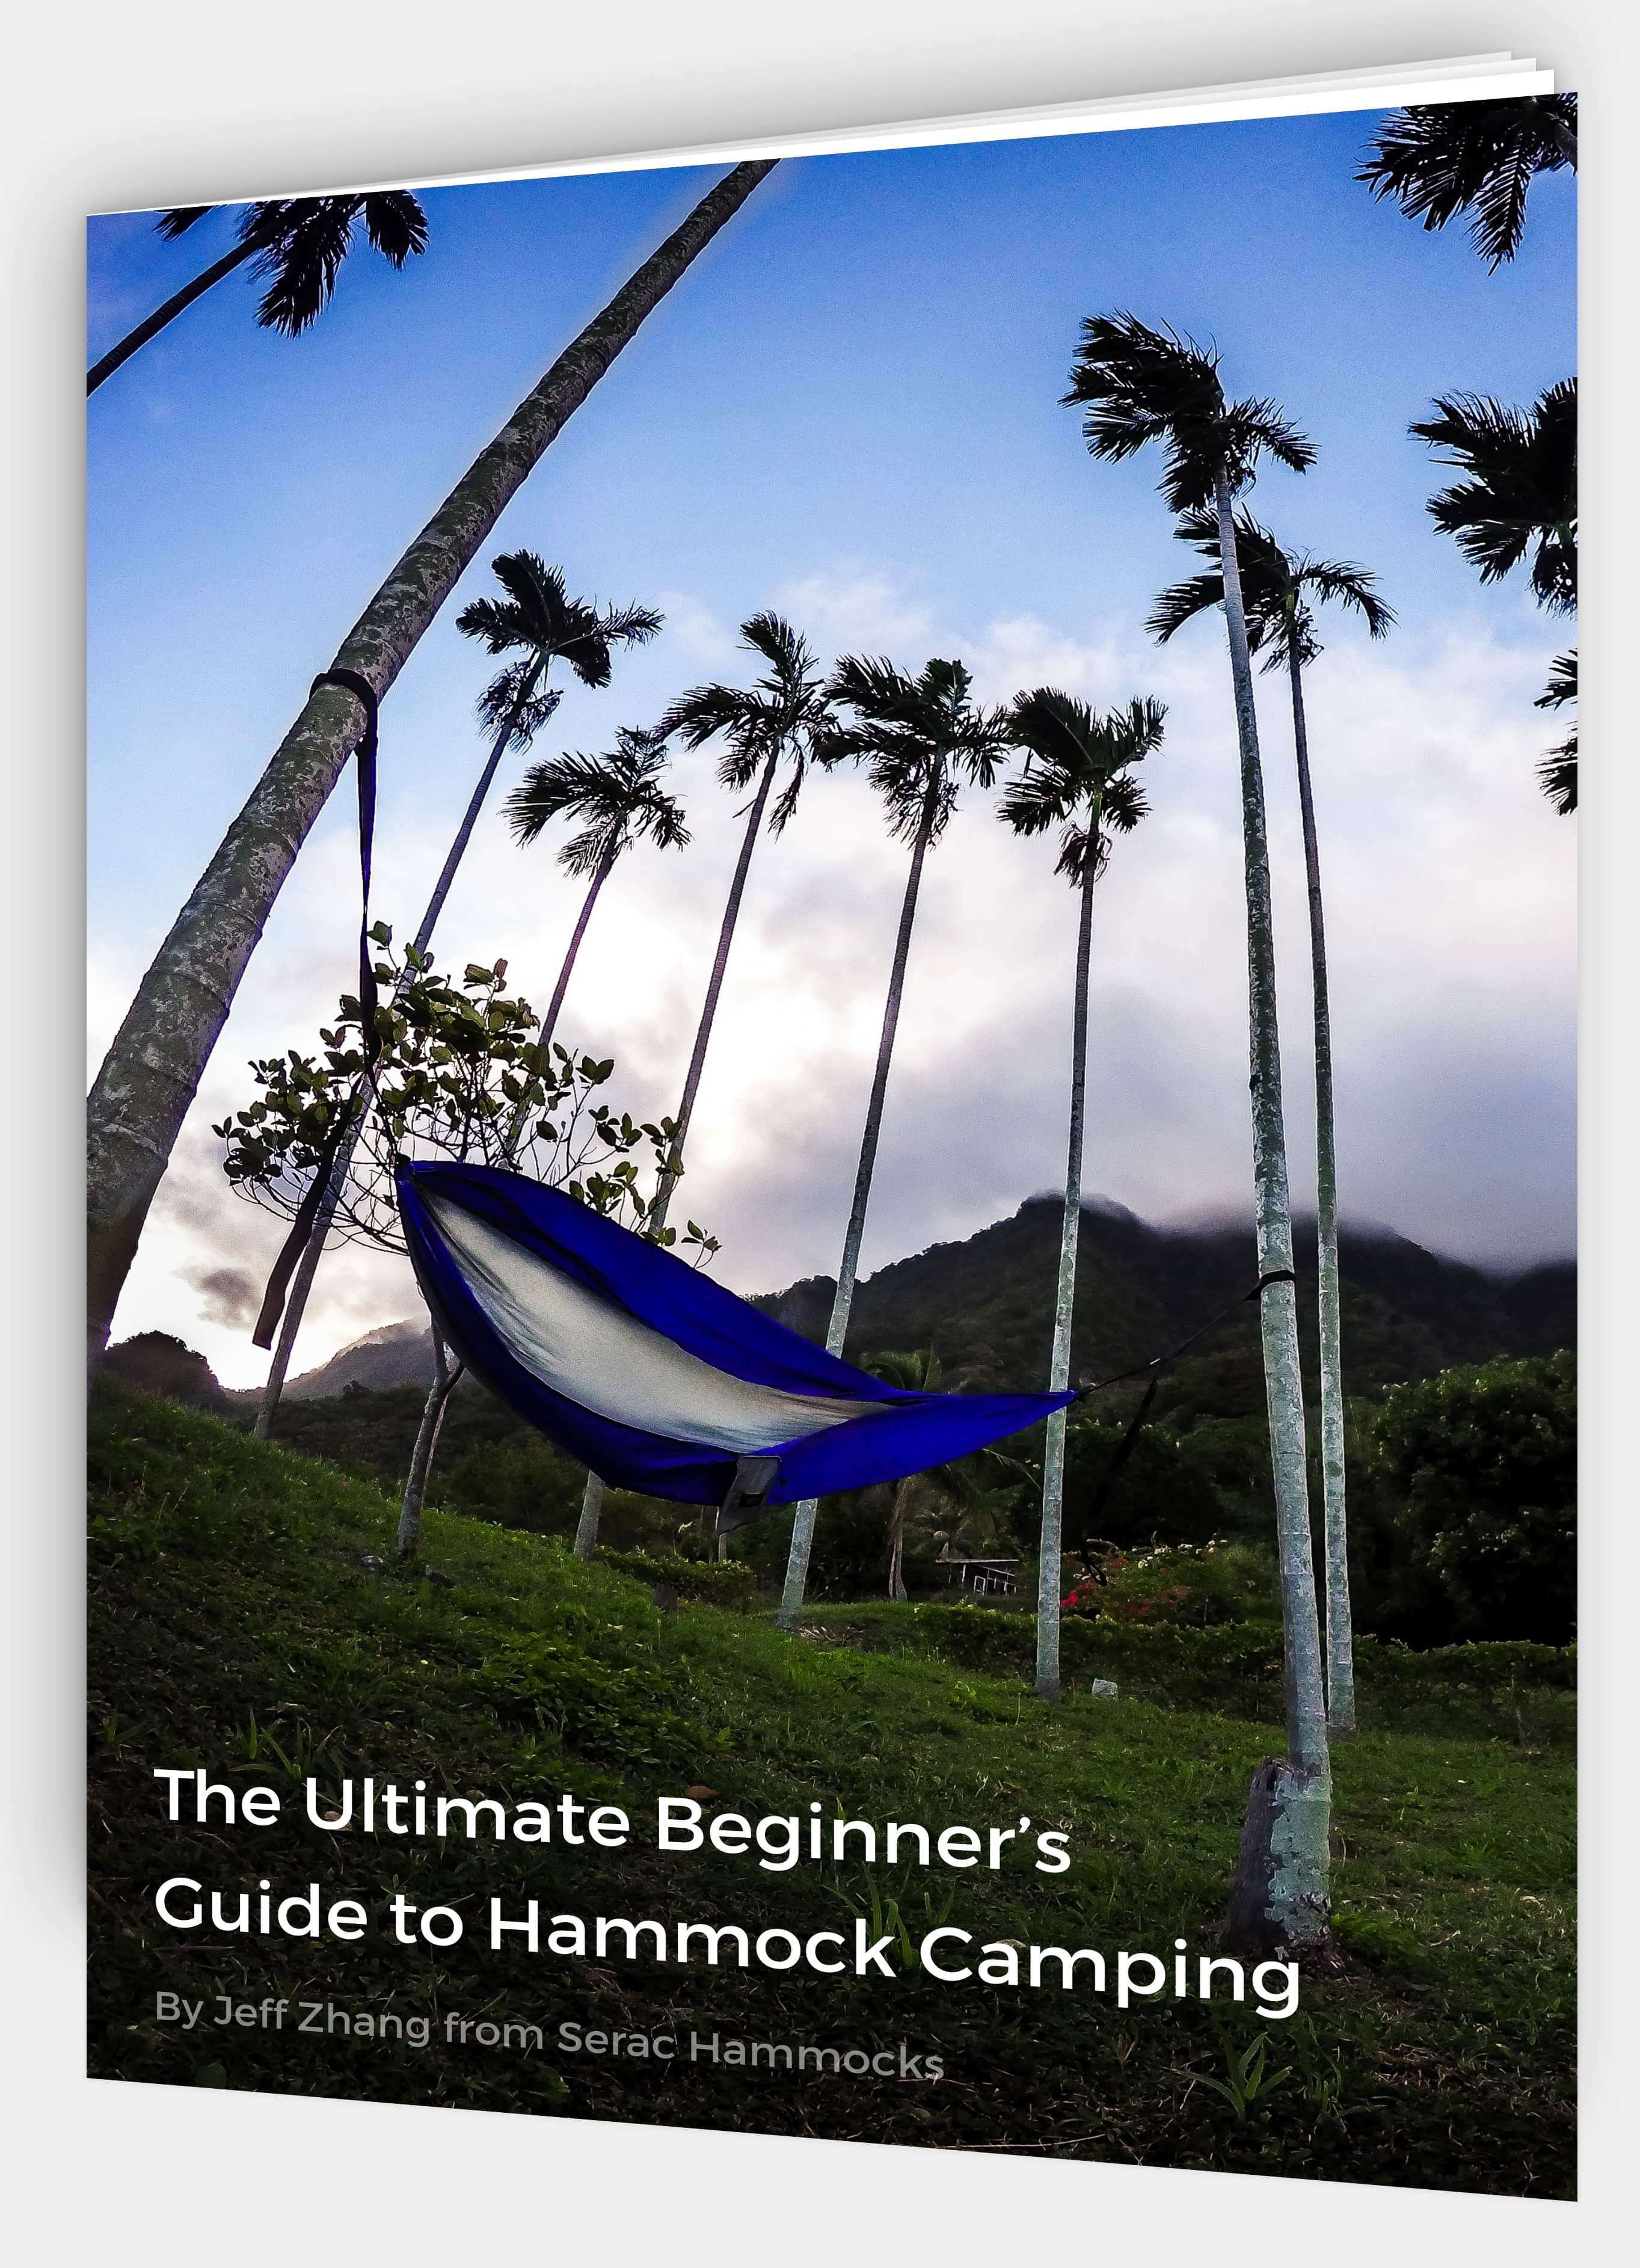 Where to Camp: A Beginner's Guide